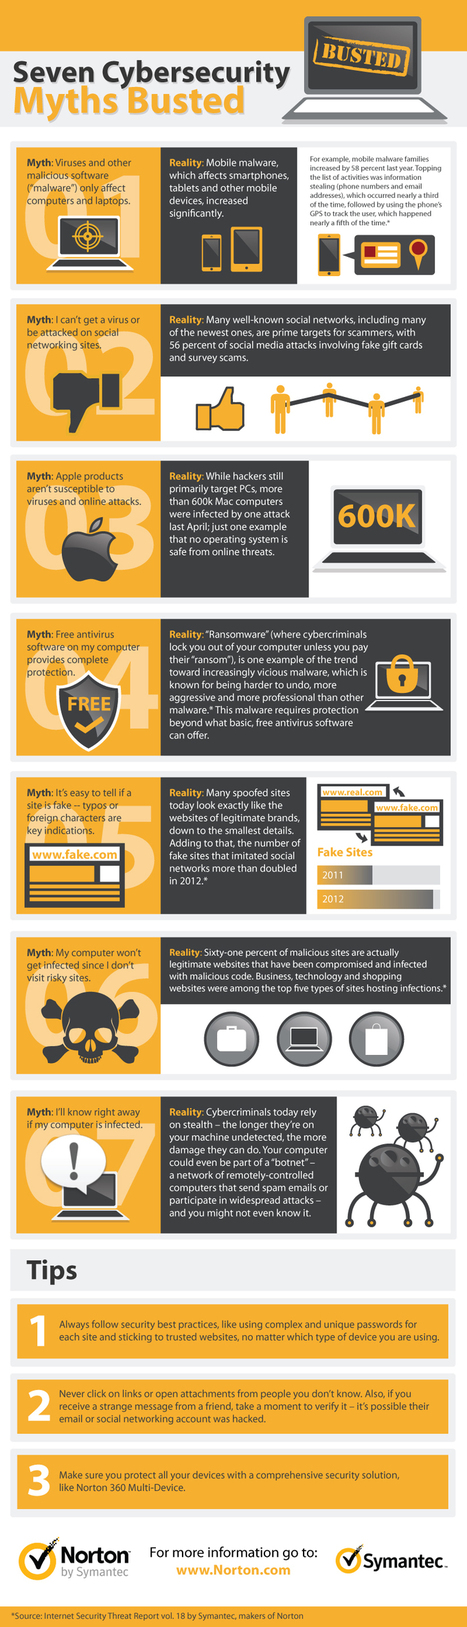 7 Cybersecurity Myths Busted [Infographic] | prepa | Scoop.it